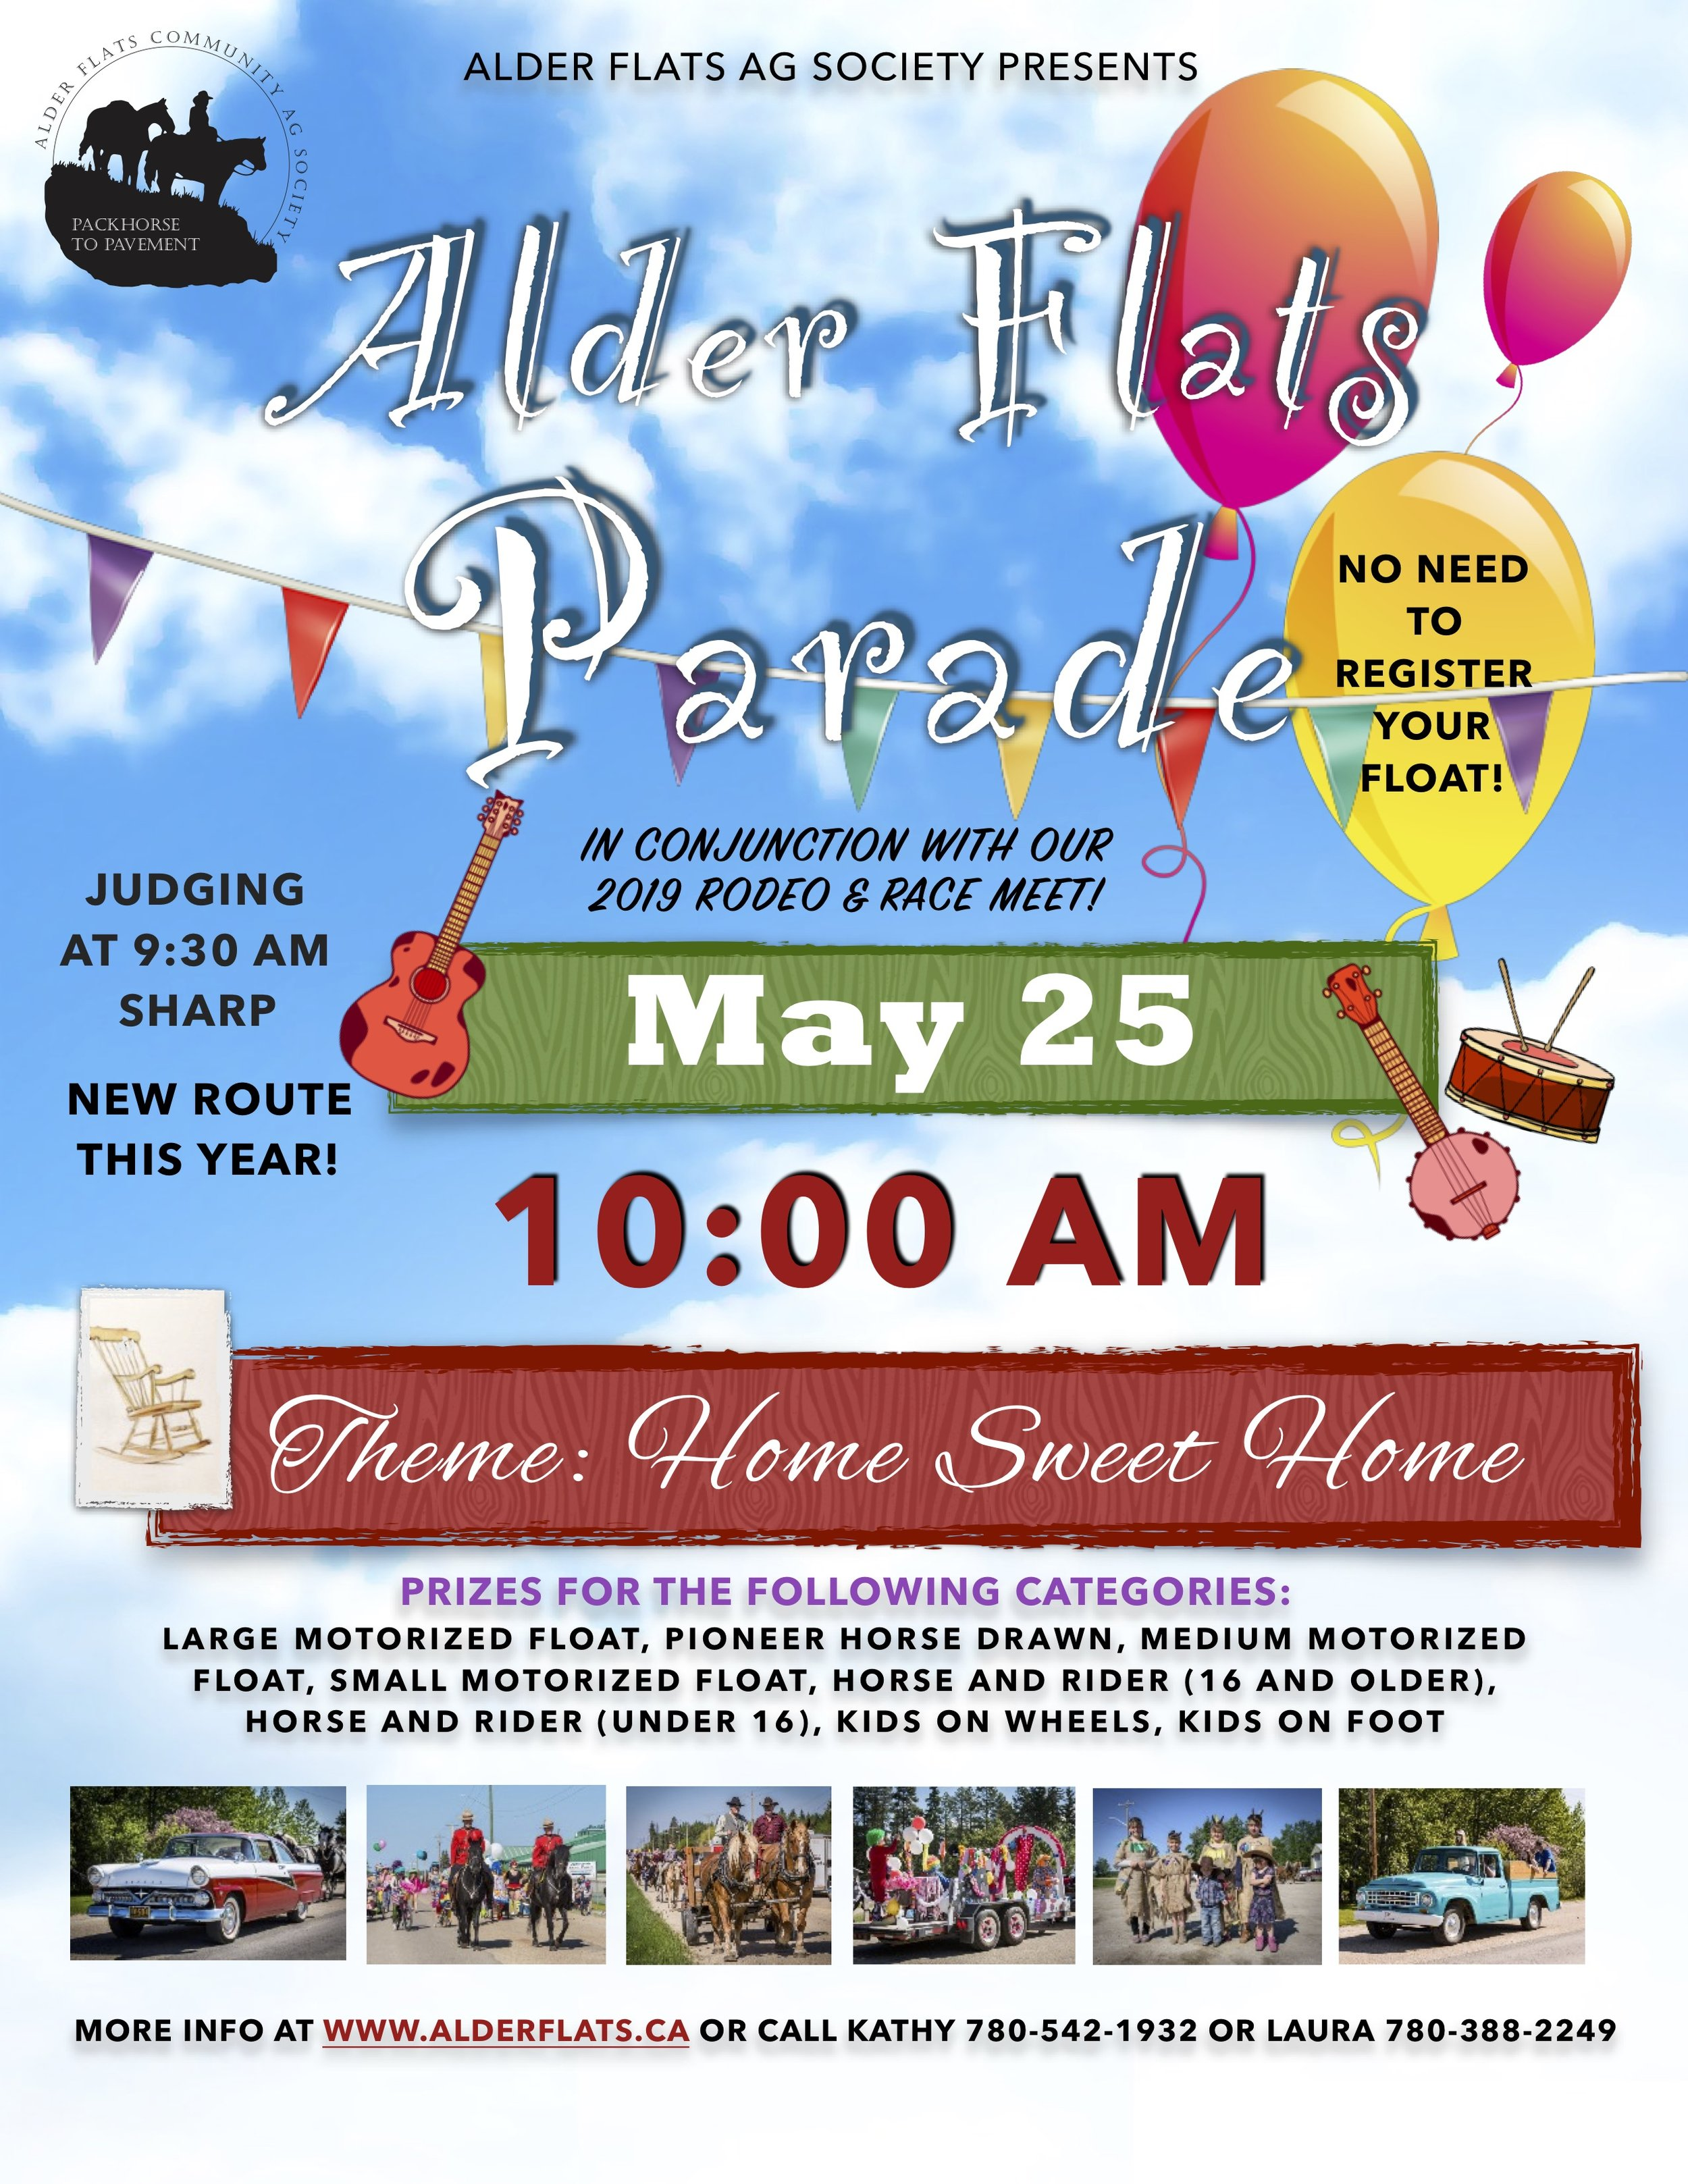 ENTER THE PARADE!  NO NEED TO PREREGISTER YOUR FLOAT.  JUST SHOW UP ON MAY 25 BEFORE 9:30 AM AT THE STAGING AREA WHICH WILL BE POSTED ON OUR WEBSITE AND FACEBOOK PAGE BY MAY 15.